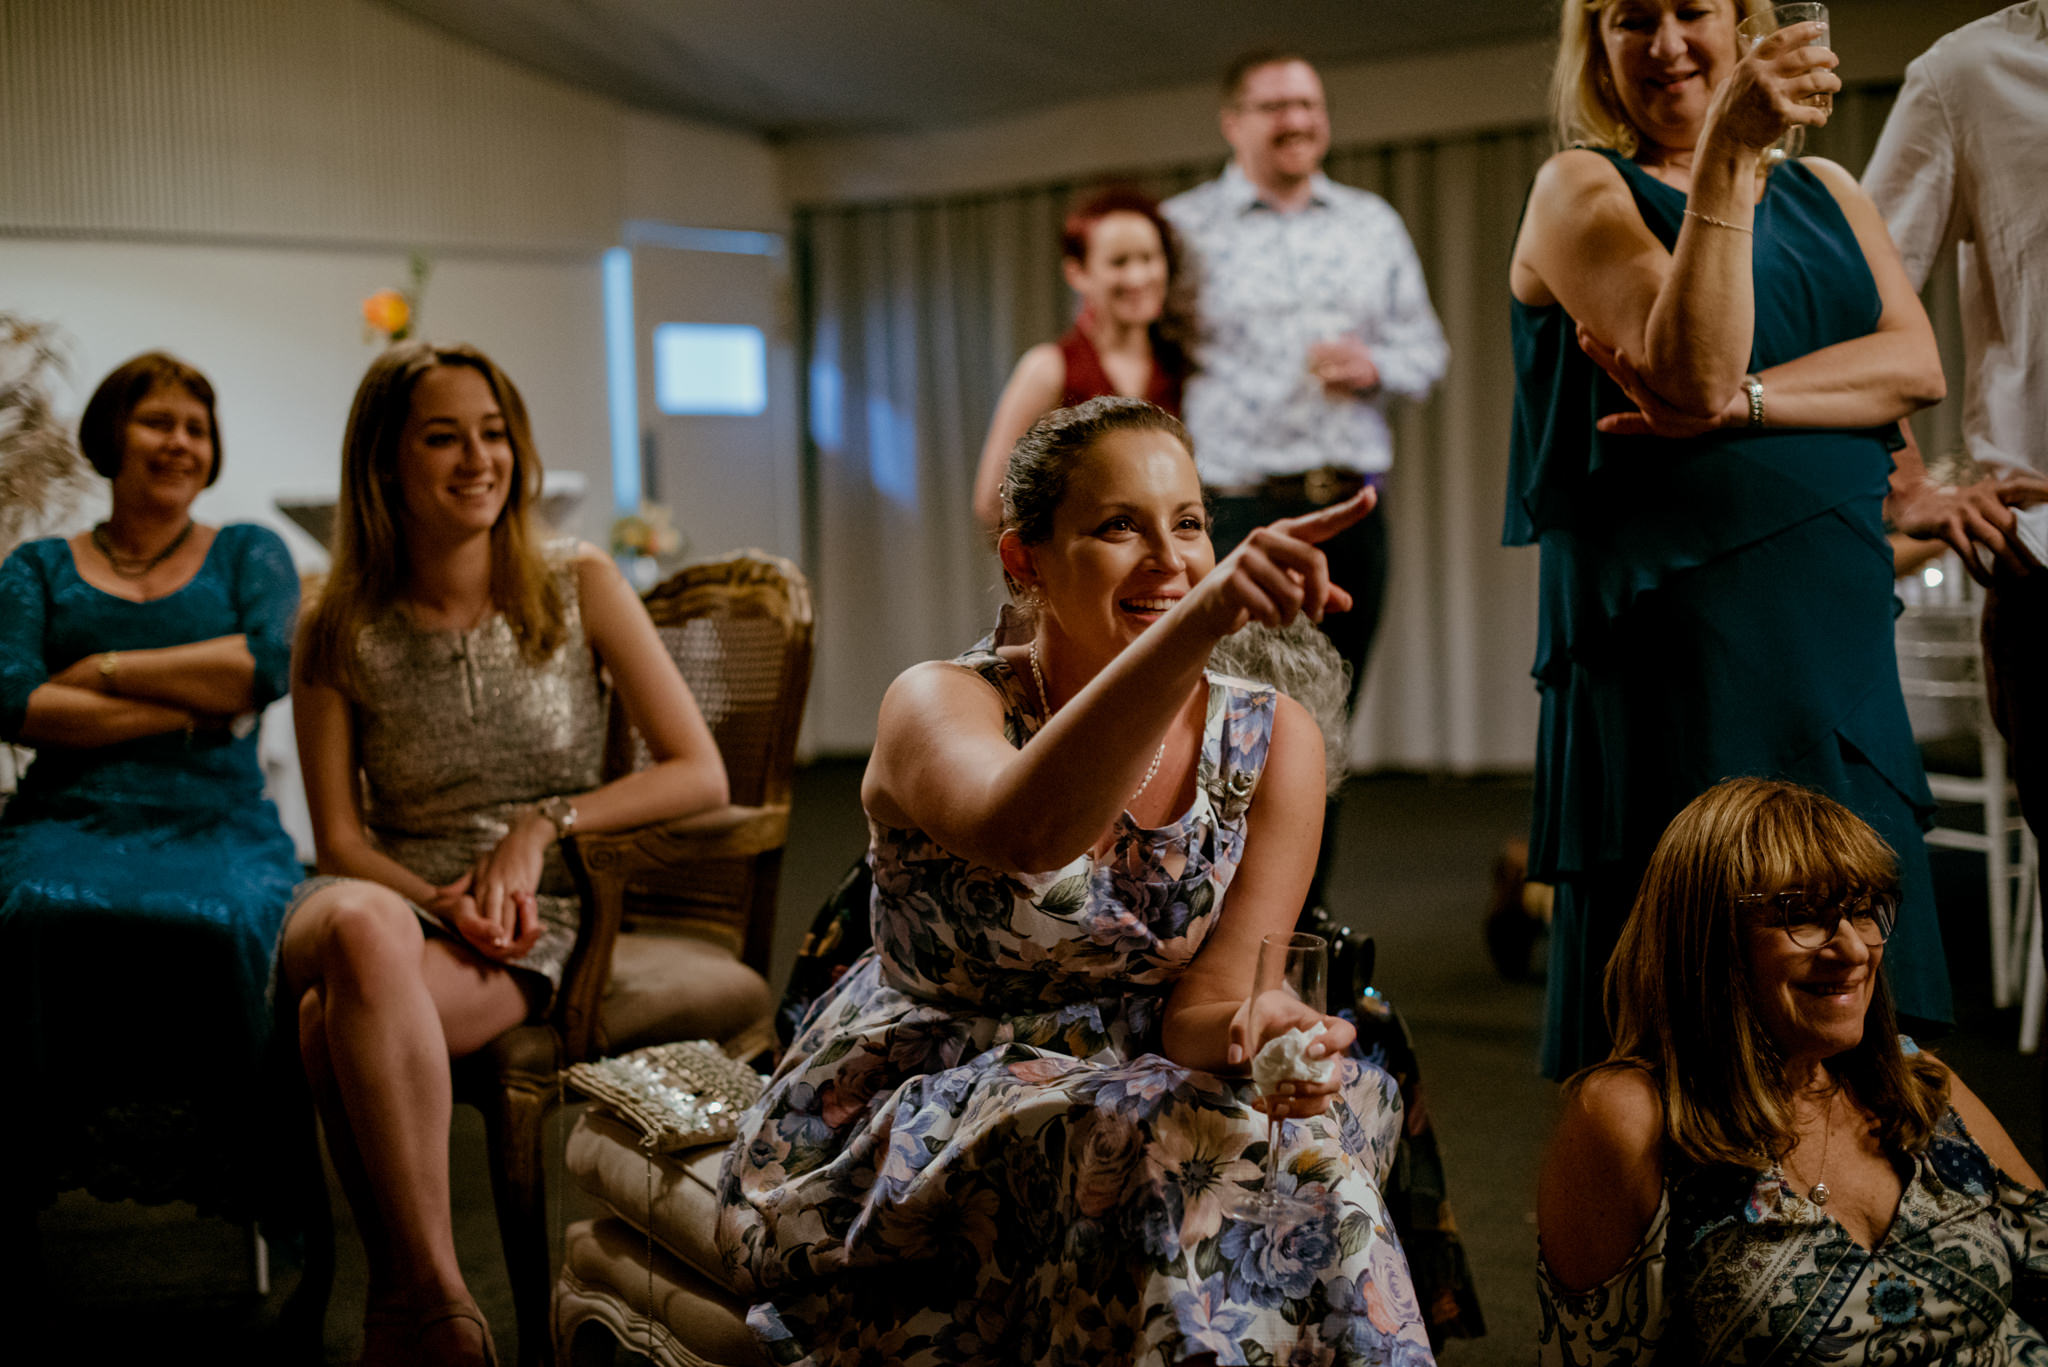 Wedding guest points and laughs